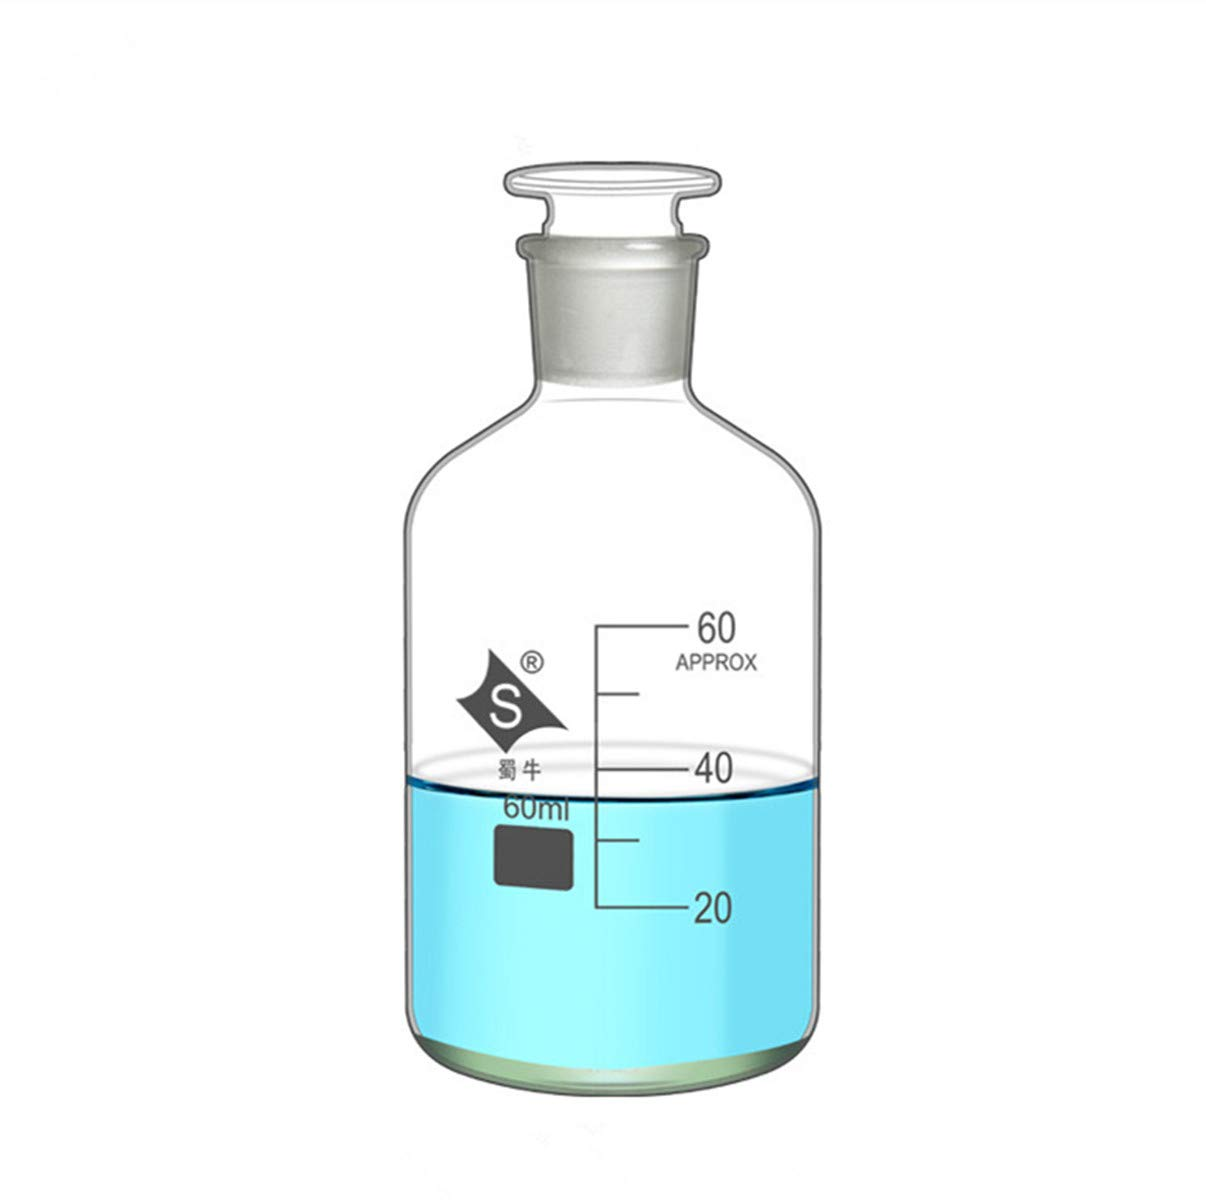 Lab Reagent Bottle 60ml Narrow Mouth Reagent Bottle with Ground Glass Clear Glass 60ml